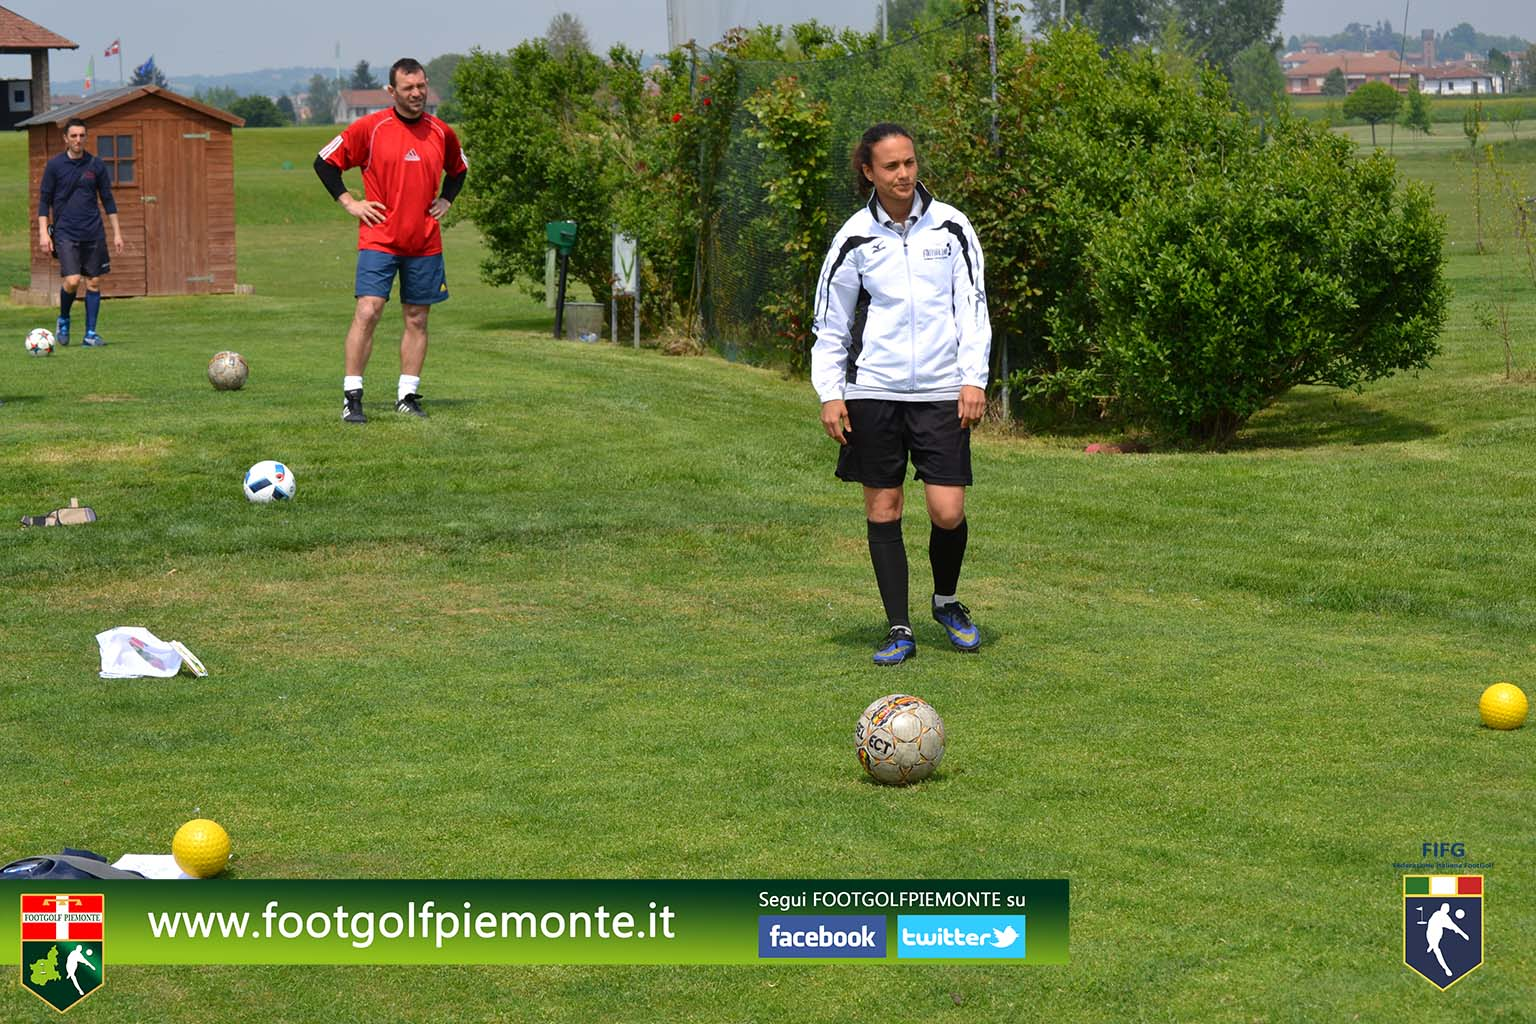 FOTO 9 Regions' Cup Footgolf Piemonte 2016 Golf Città di Asti (At) 30apr16-41